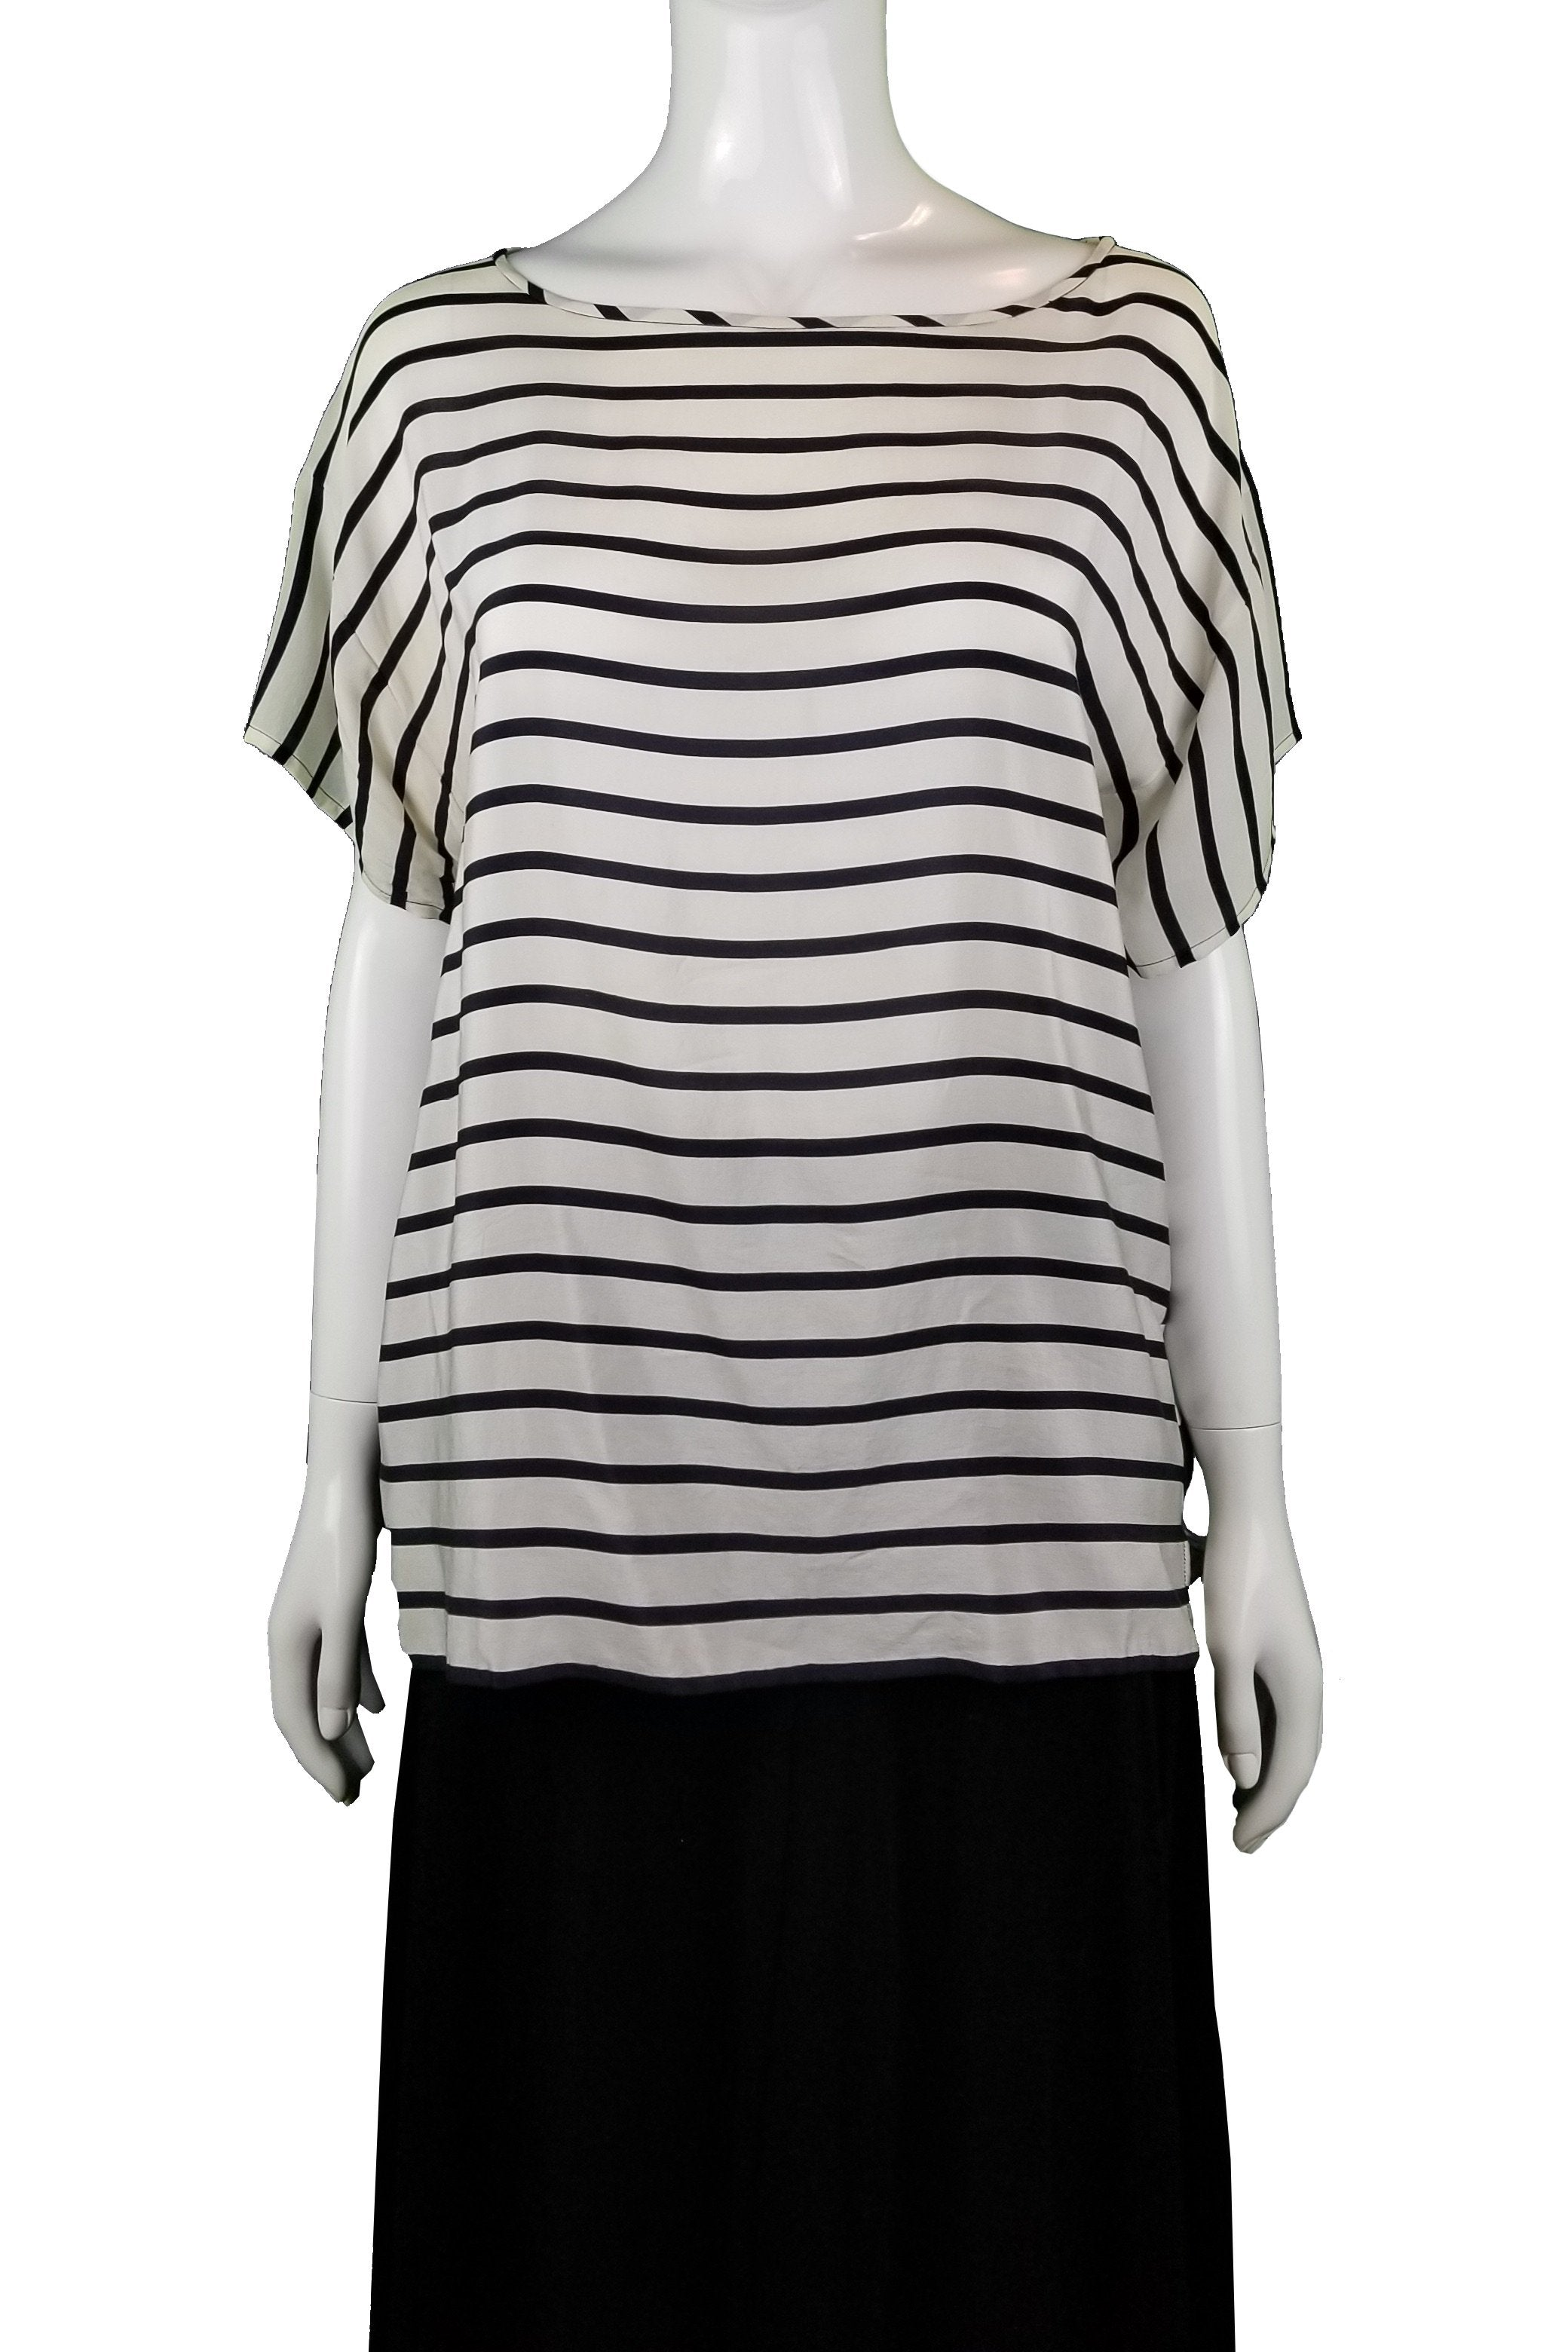 Club Monaco B/W Stripped Shirt, Feeling a little unconventional? Get this cute stripped  shirt with front and back of different patterns., Black, White, 100% Silk, women's Tops, women's Black, White Tops, Club Monaco women's Tops, Women's black and white top, women's top, women's shirt, women's summer top